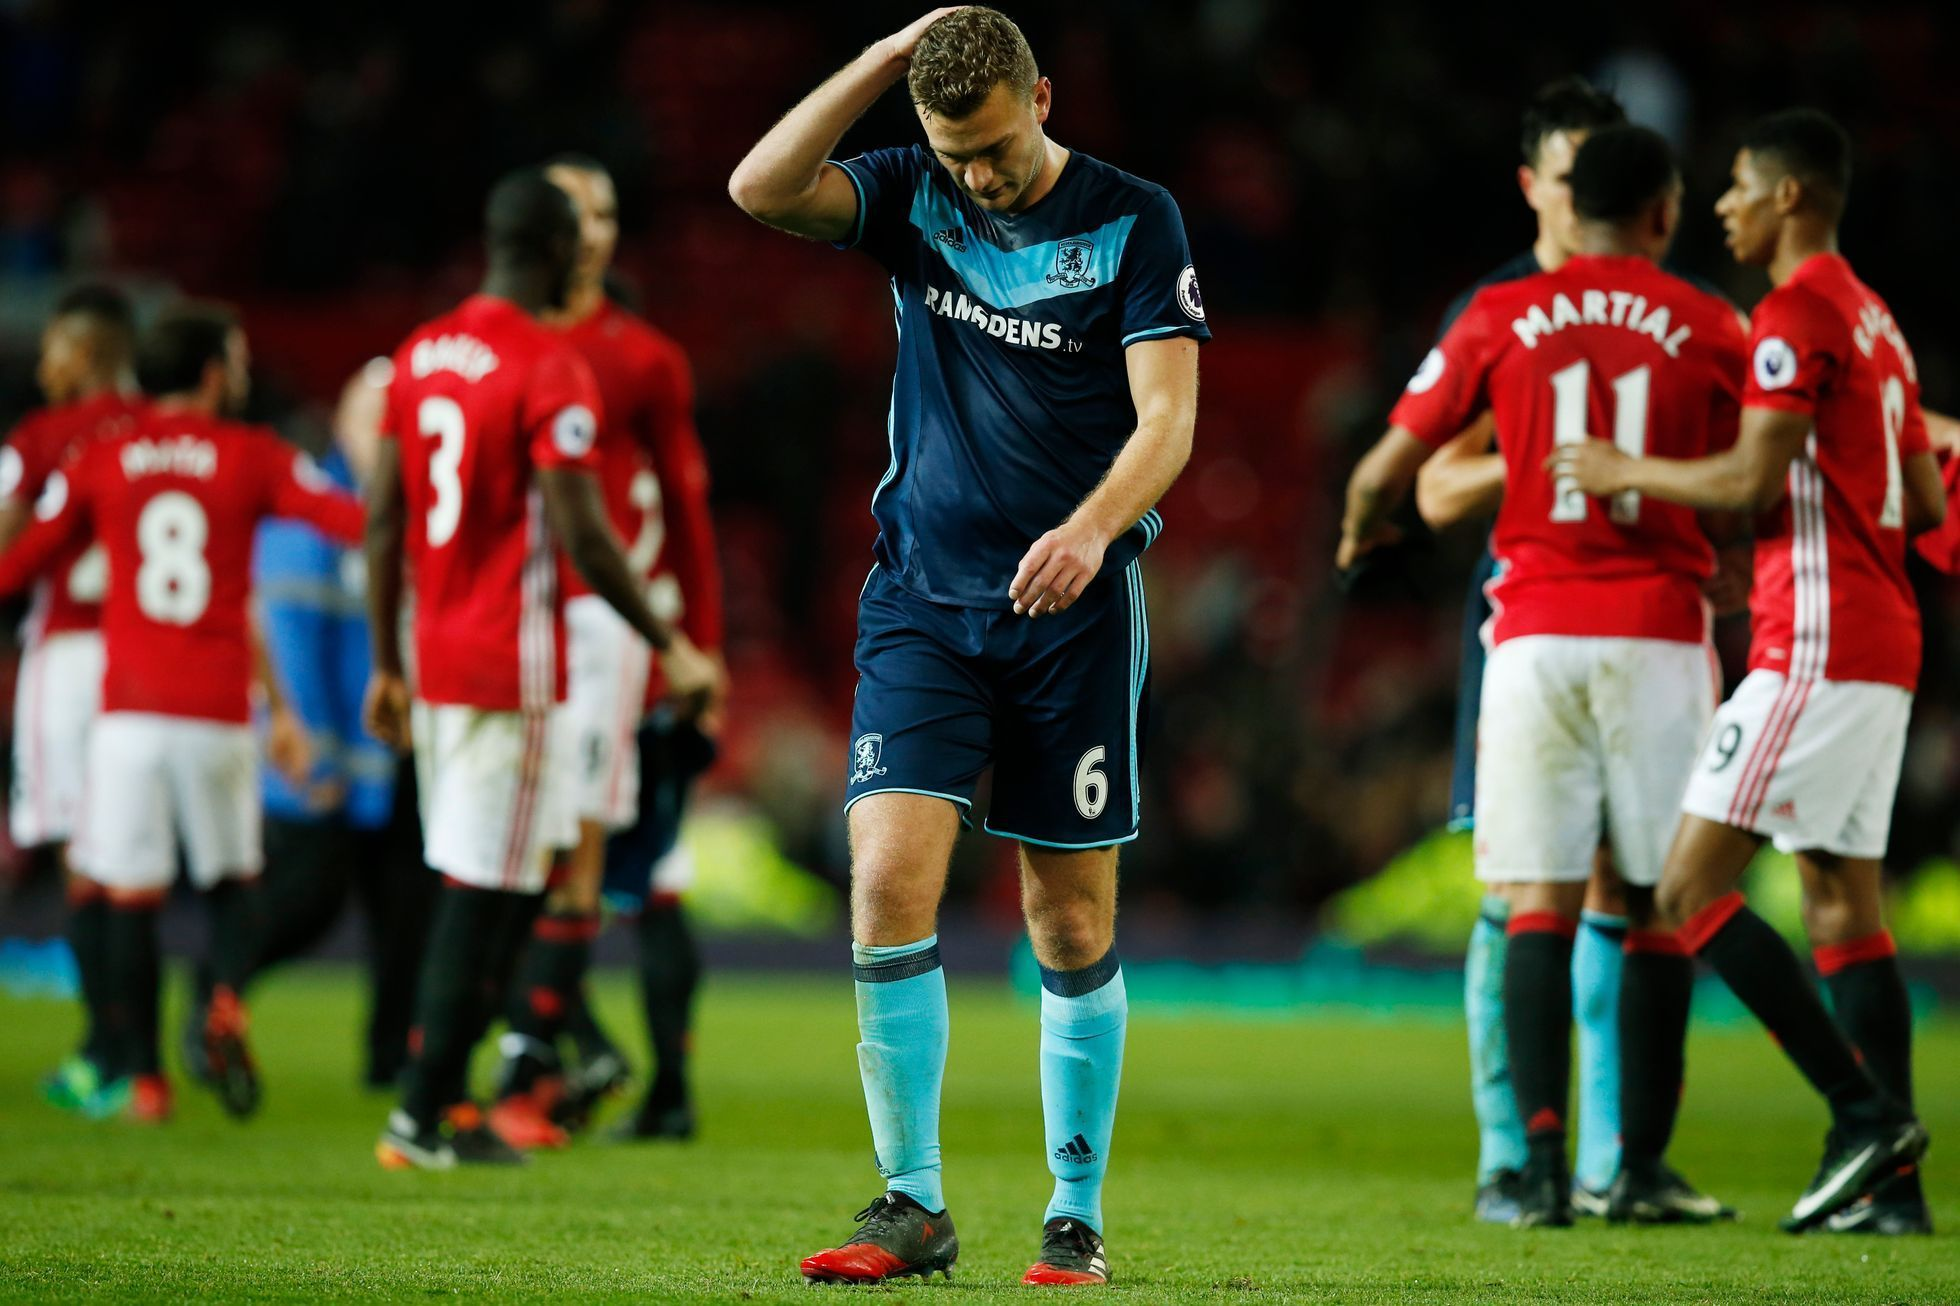 Ben Gibson z Middlesbrough po prohraném zápase s Manchesterem United